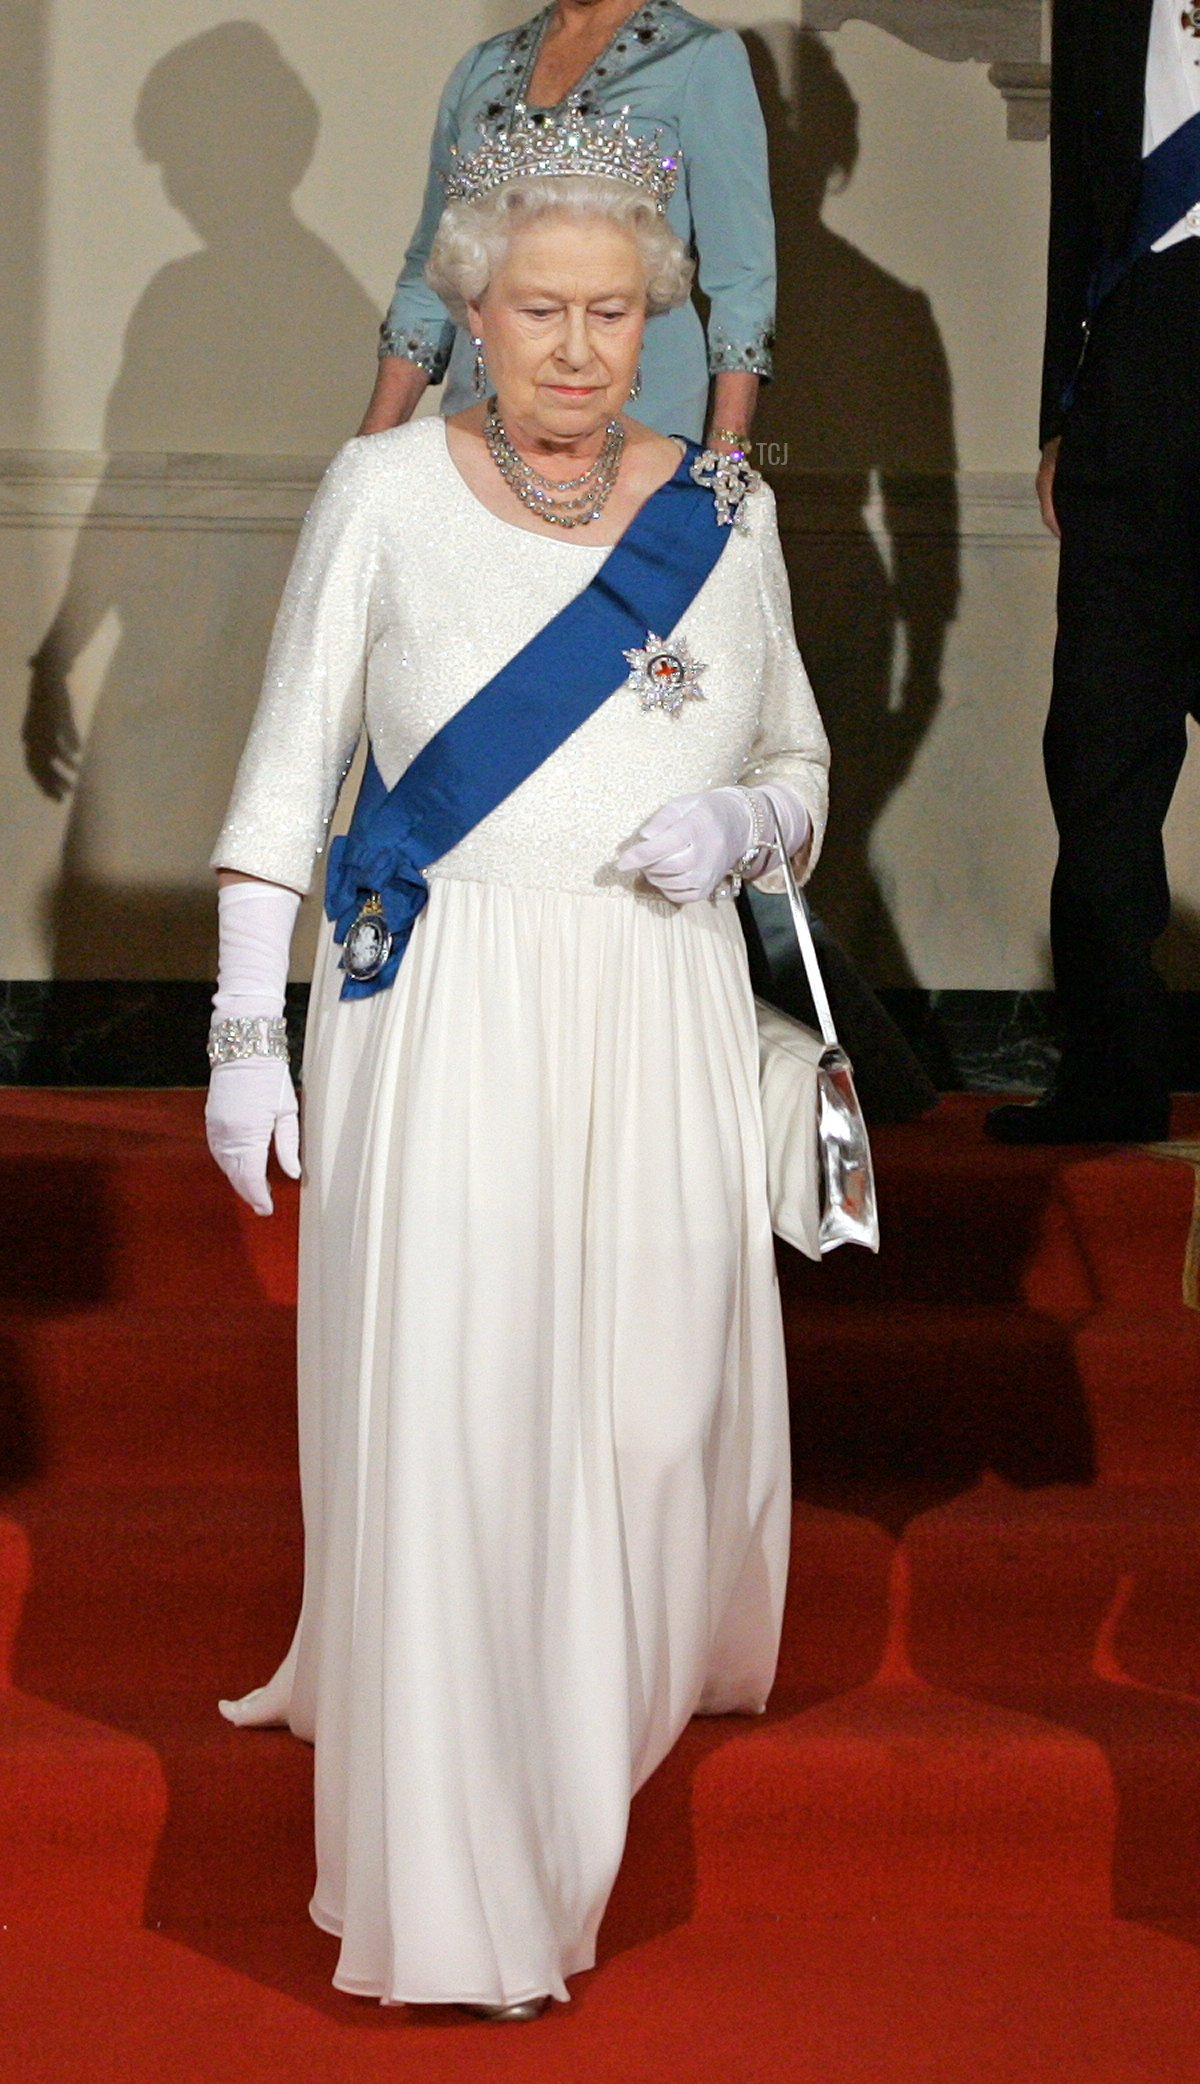 Queen Elizabeth II at the White House for a state banquet in 2007